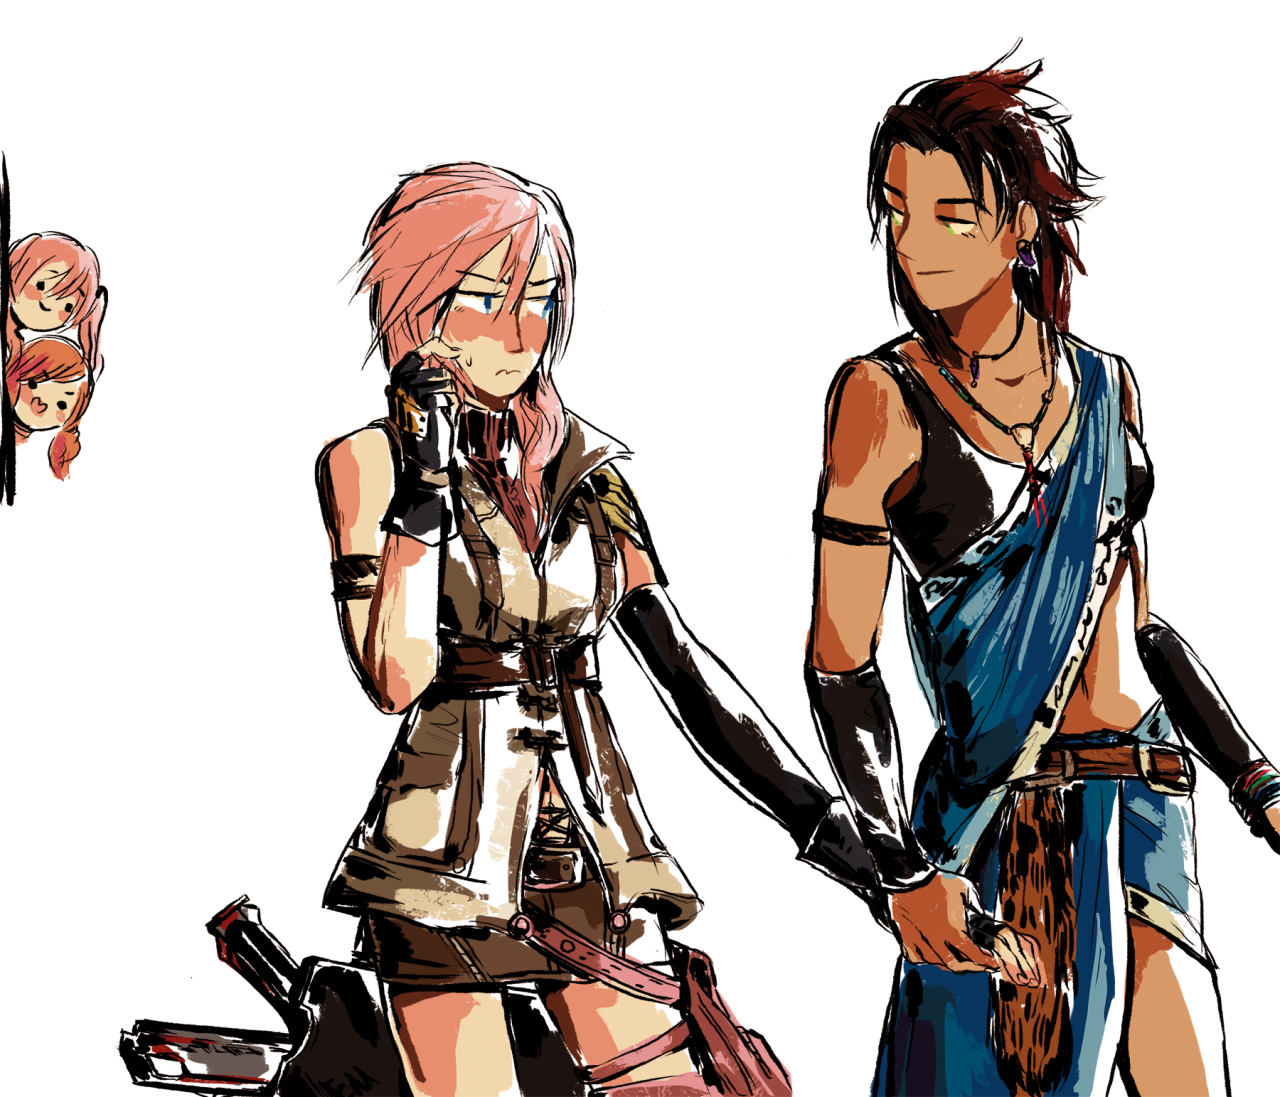 Art And Stuff That Inspires Final Fantasy Characters